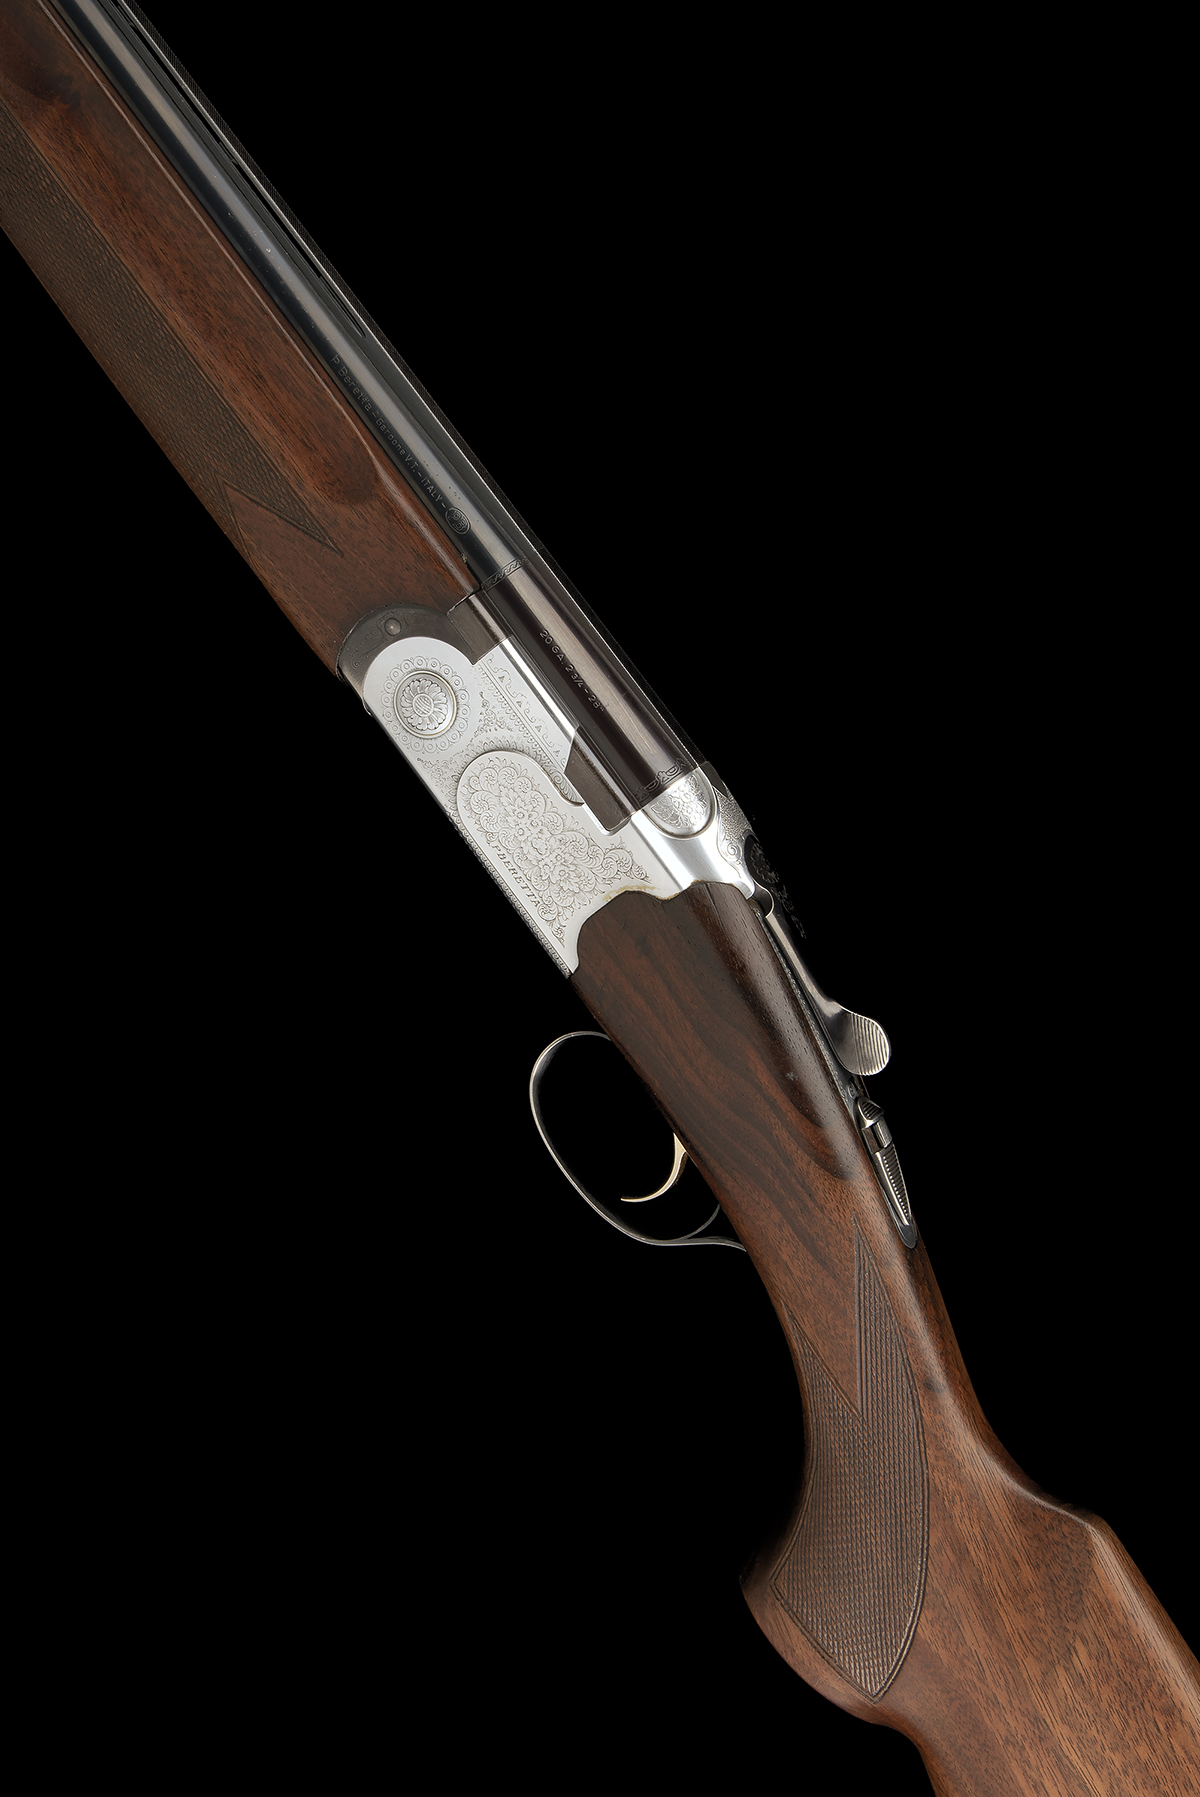 P. BERETTA A 20-BORE 'MOD. S686 SPECIAL' SINGLE-TRIGGER OVER AND UNDER EJECTOR, serial no.